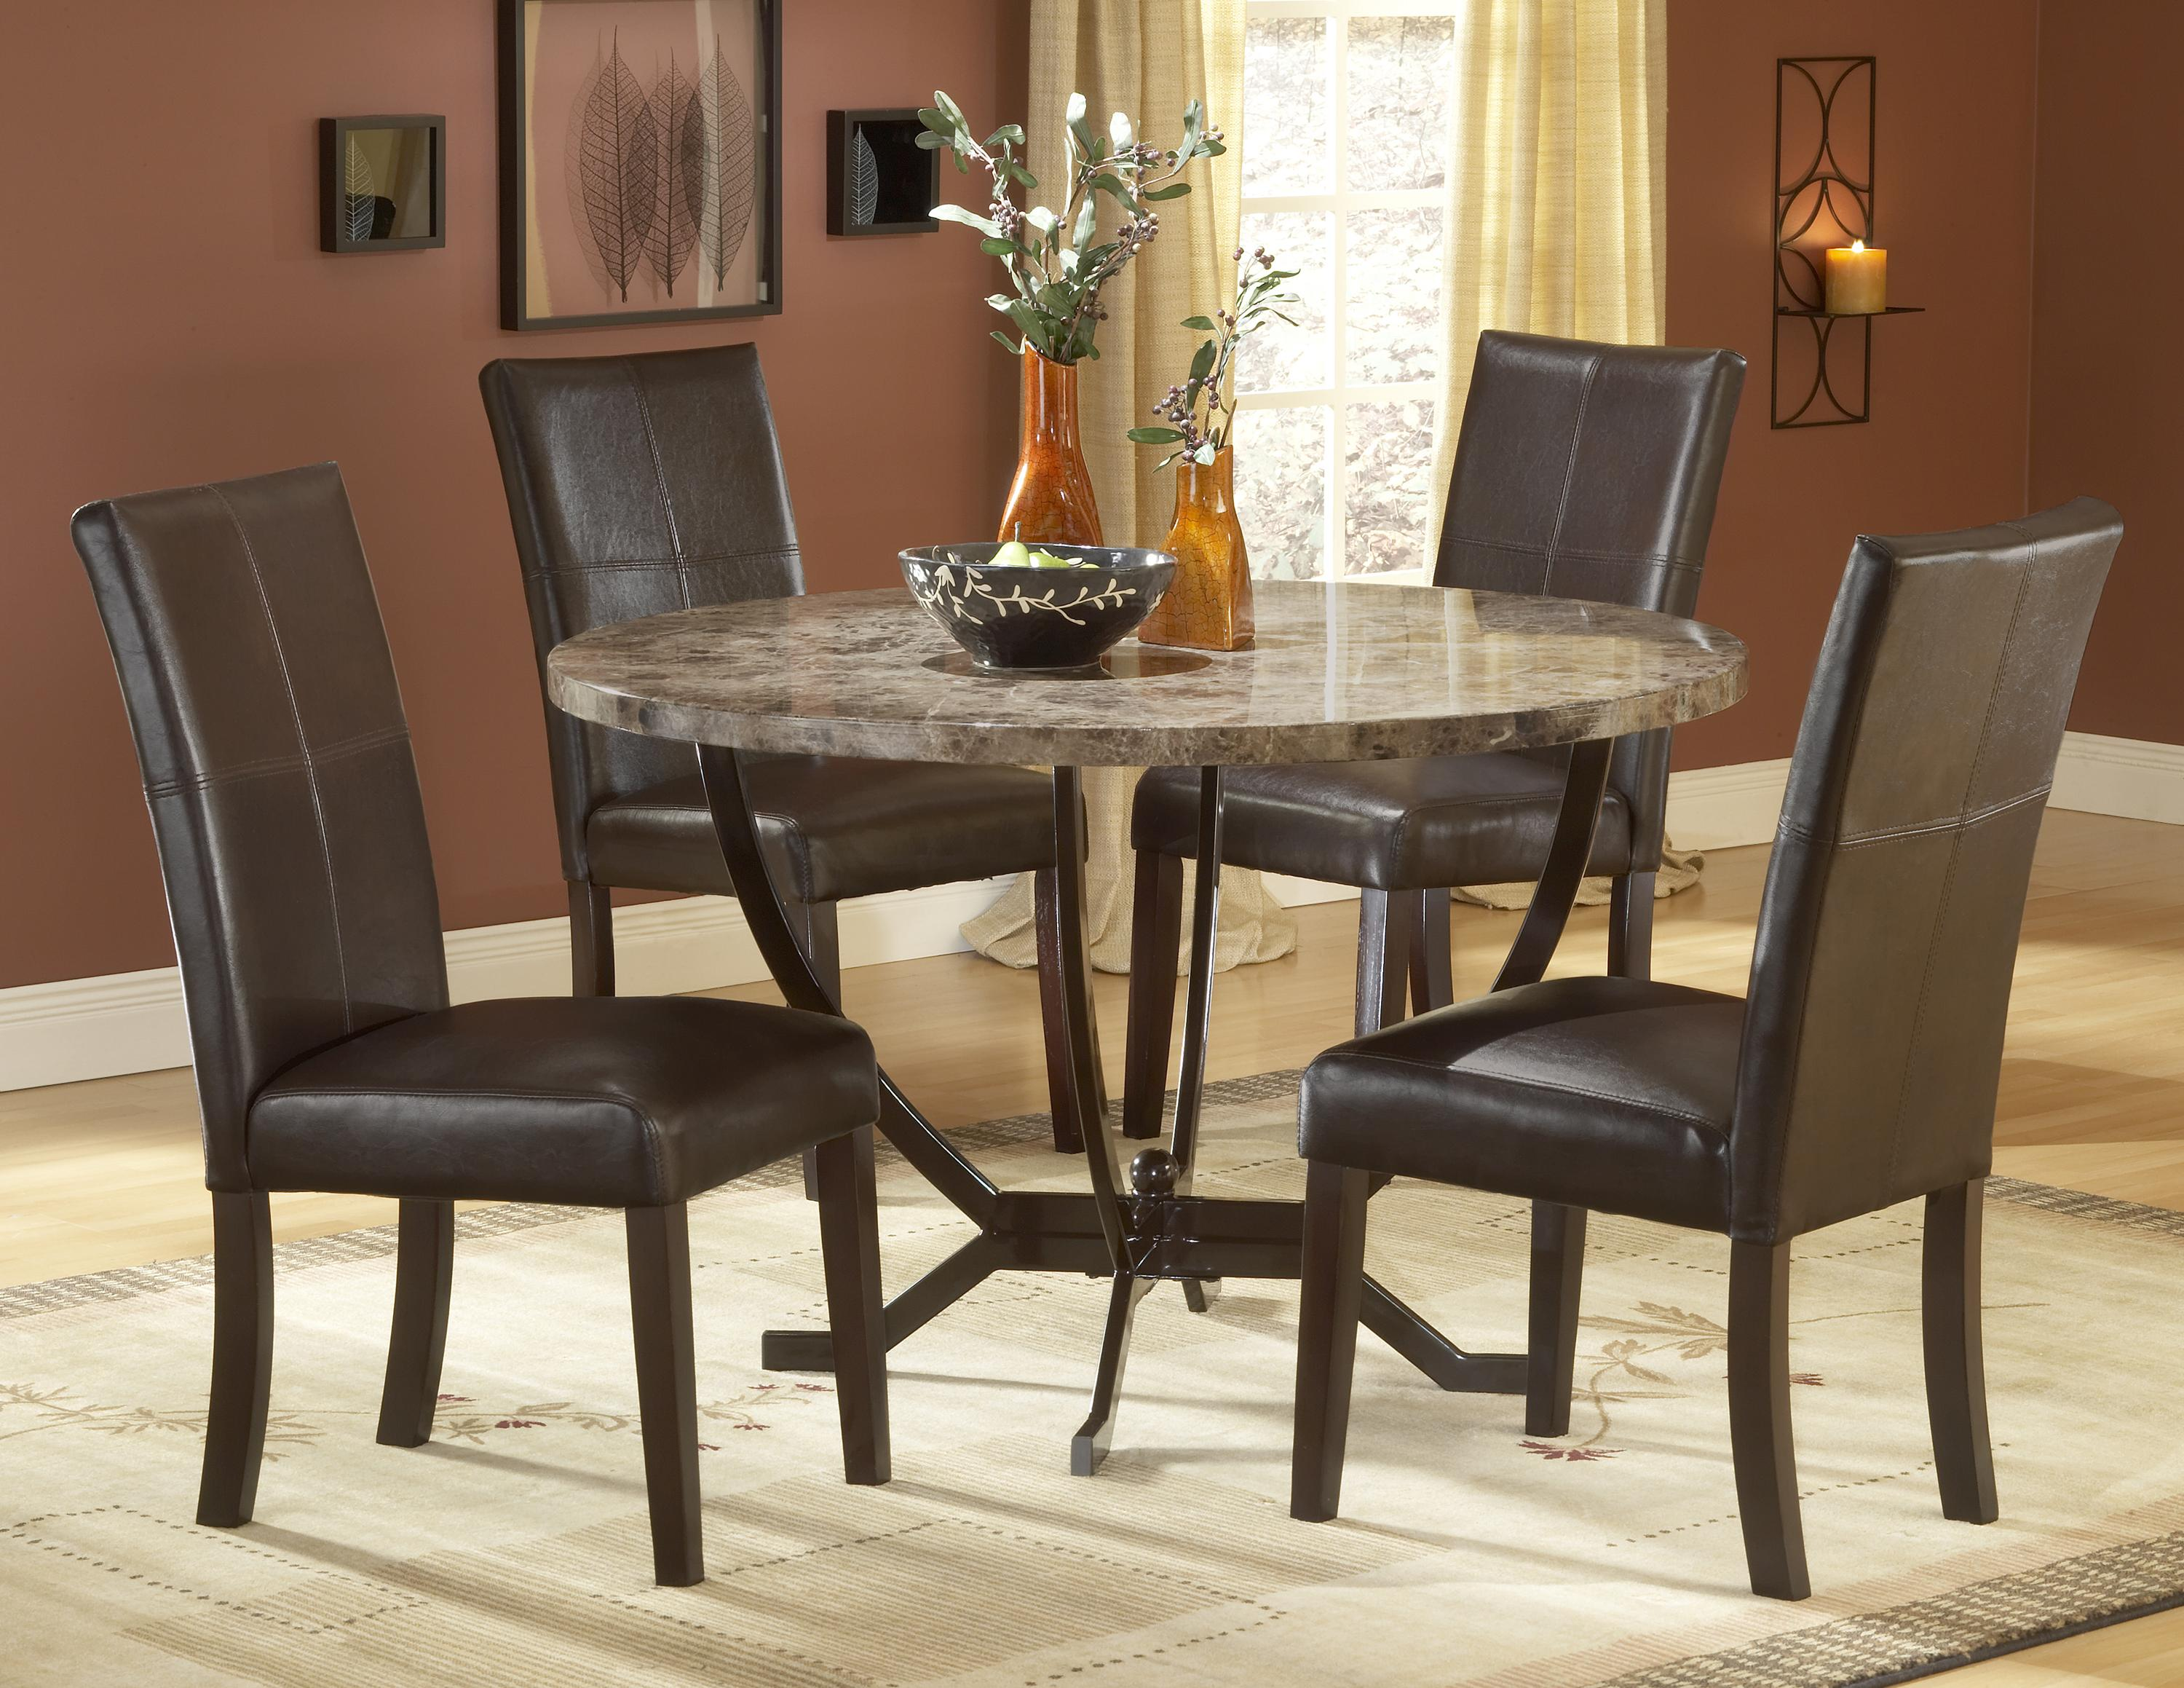 Small dinette set design homesfeed for Small white dining room sets